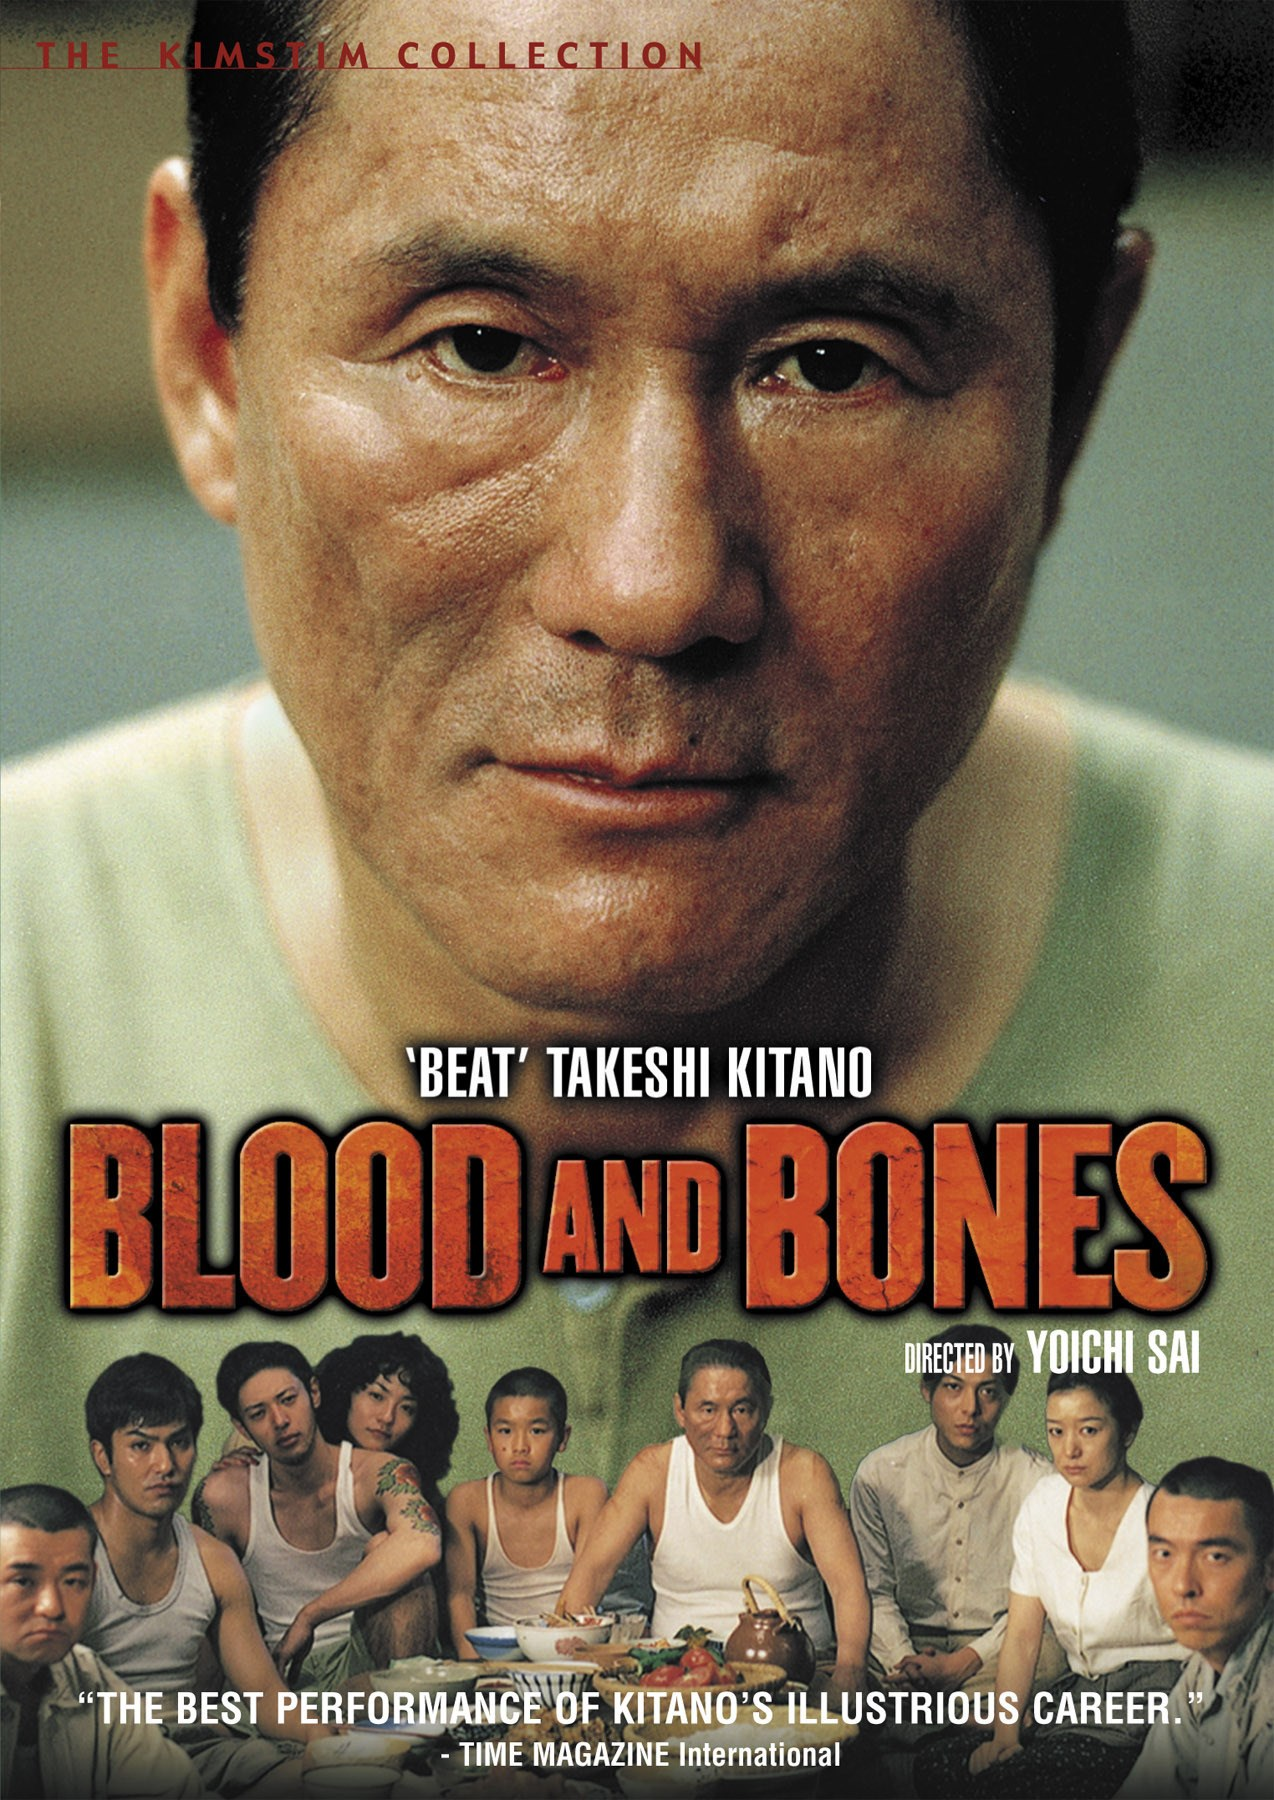 blood and bones chi to hone imdb release info blood and bones 2004 ...